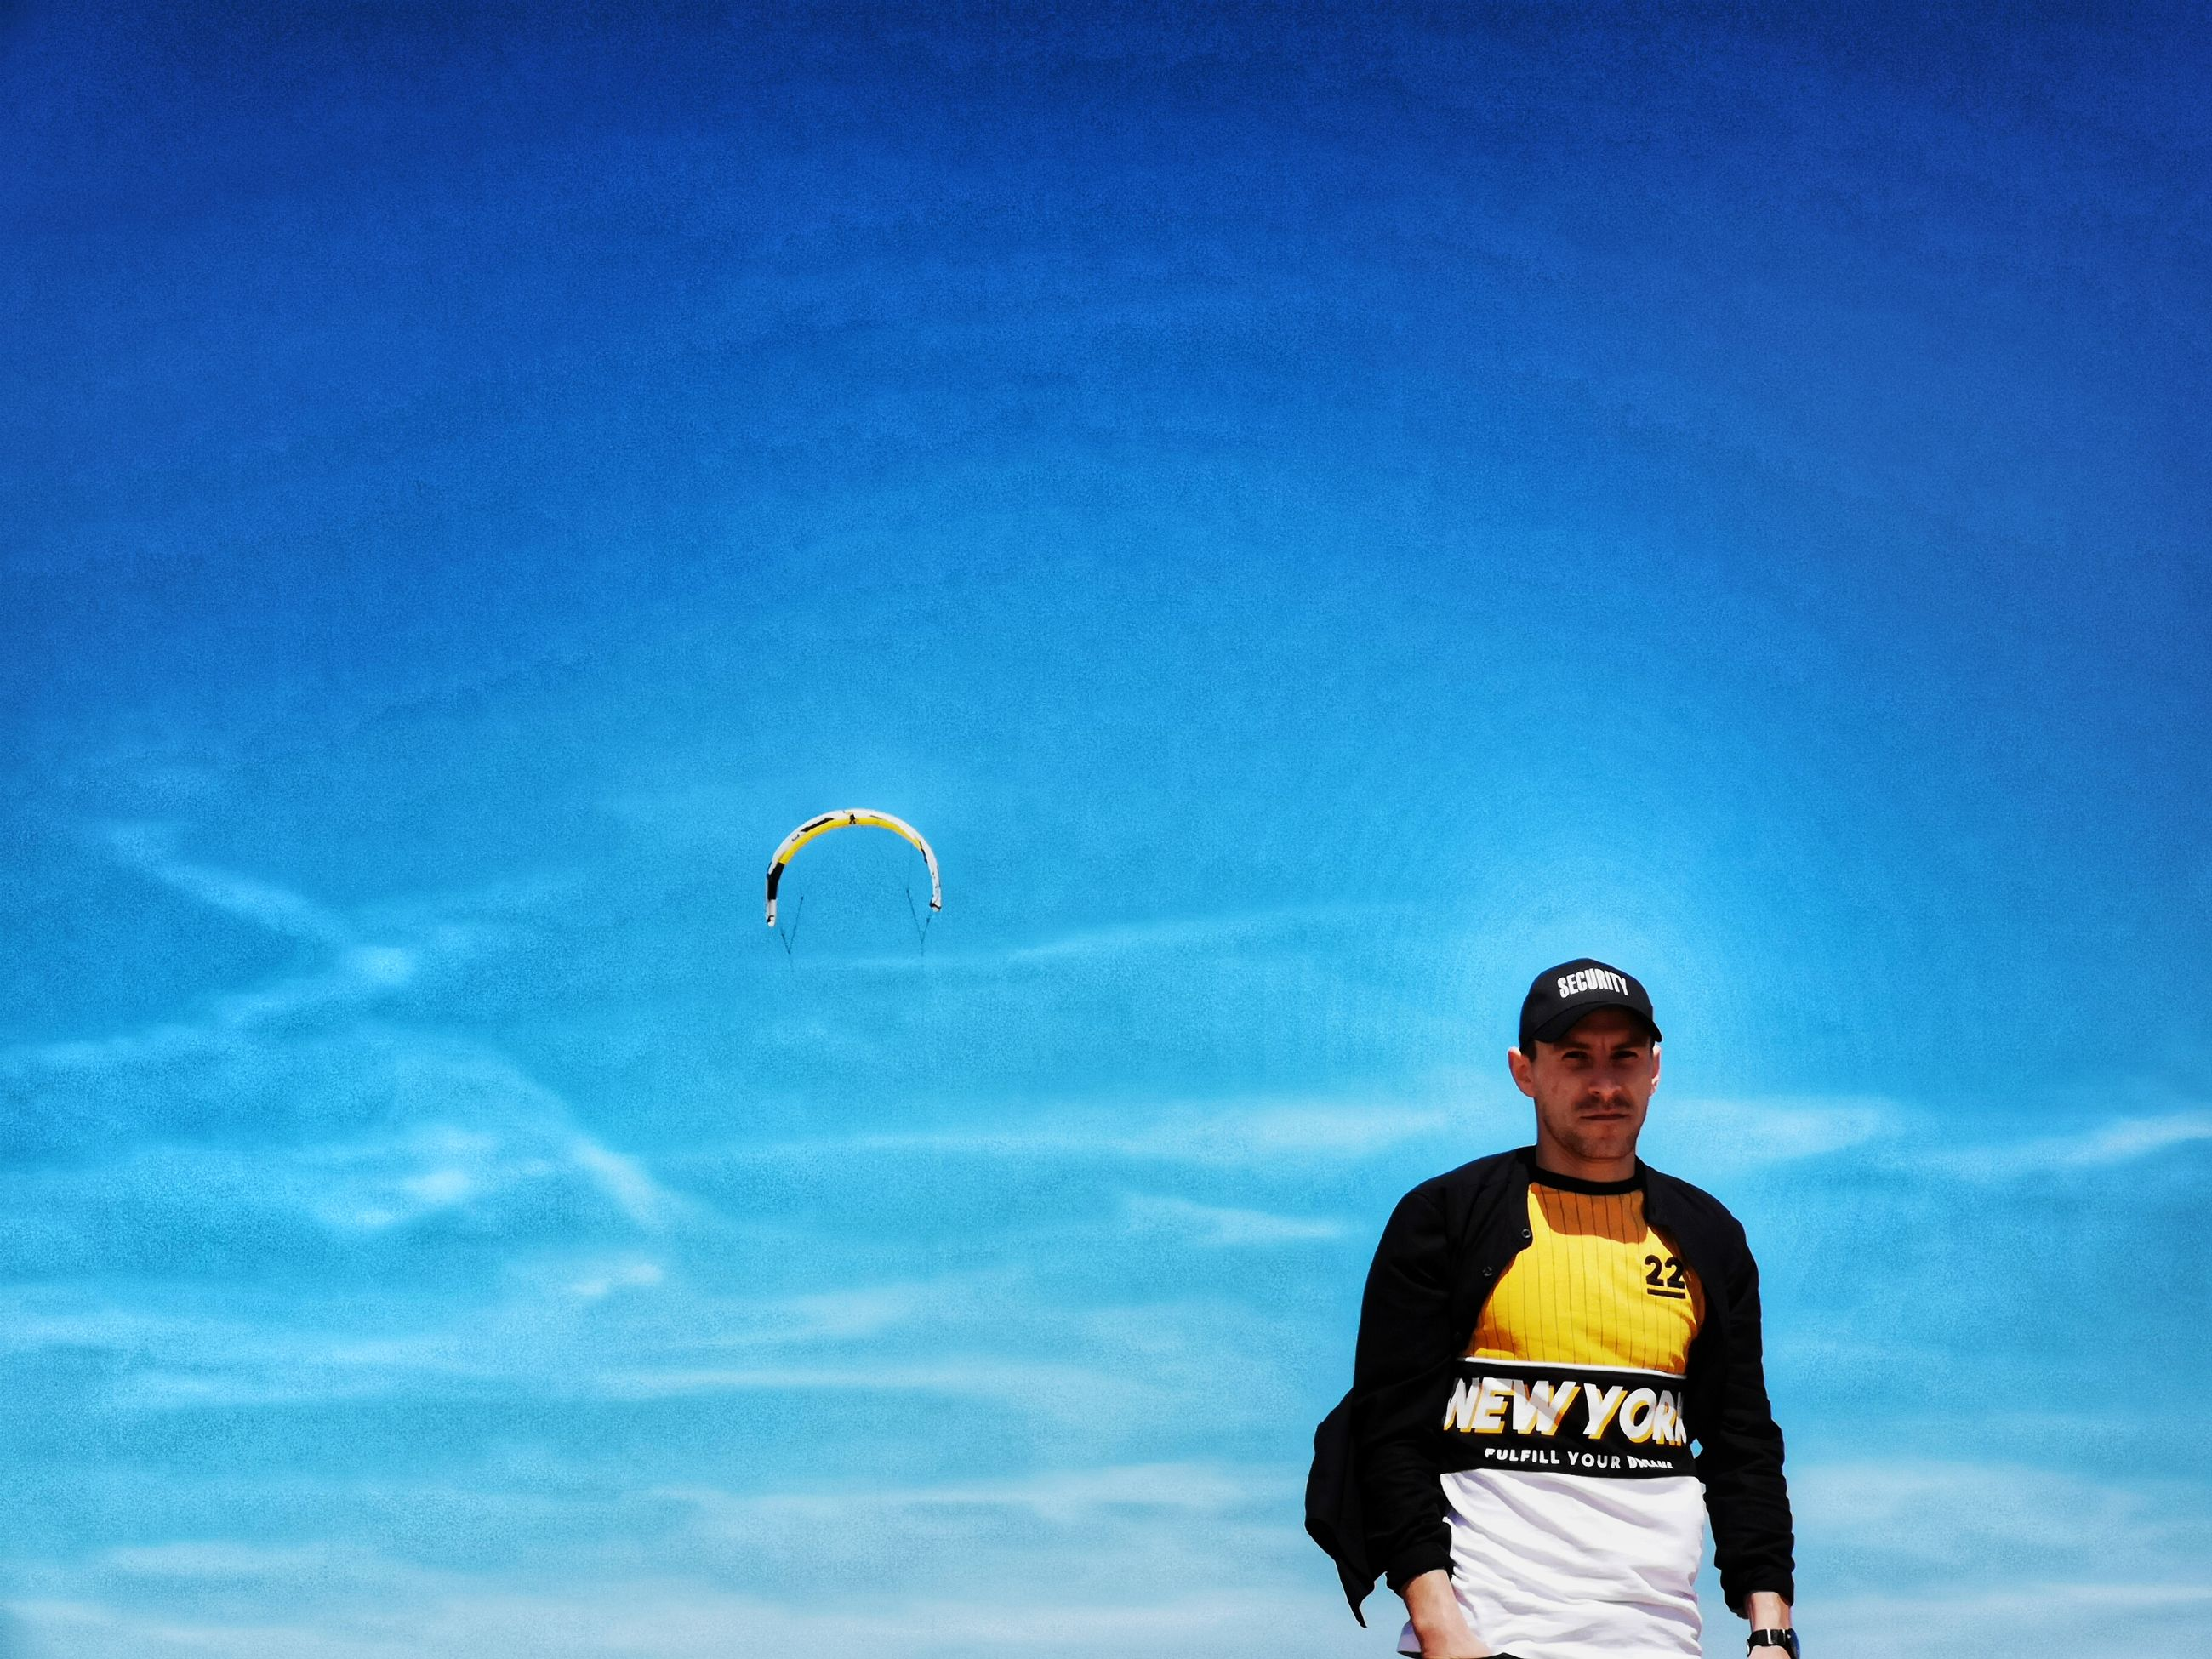 sky, one person, leisure activity, low angle view, sport, blue, front view, cloud - sky, parachute, real people, day, standing, flying, lifestyles, nature, three quarter length, paragliding, extreme sports, glasses